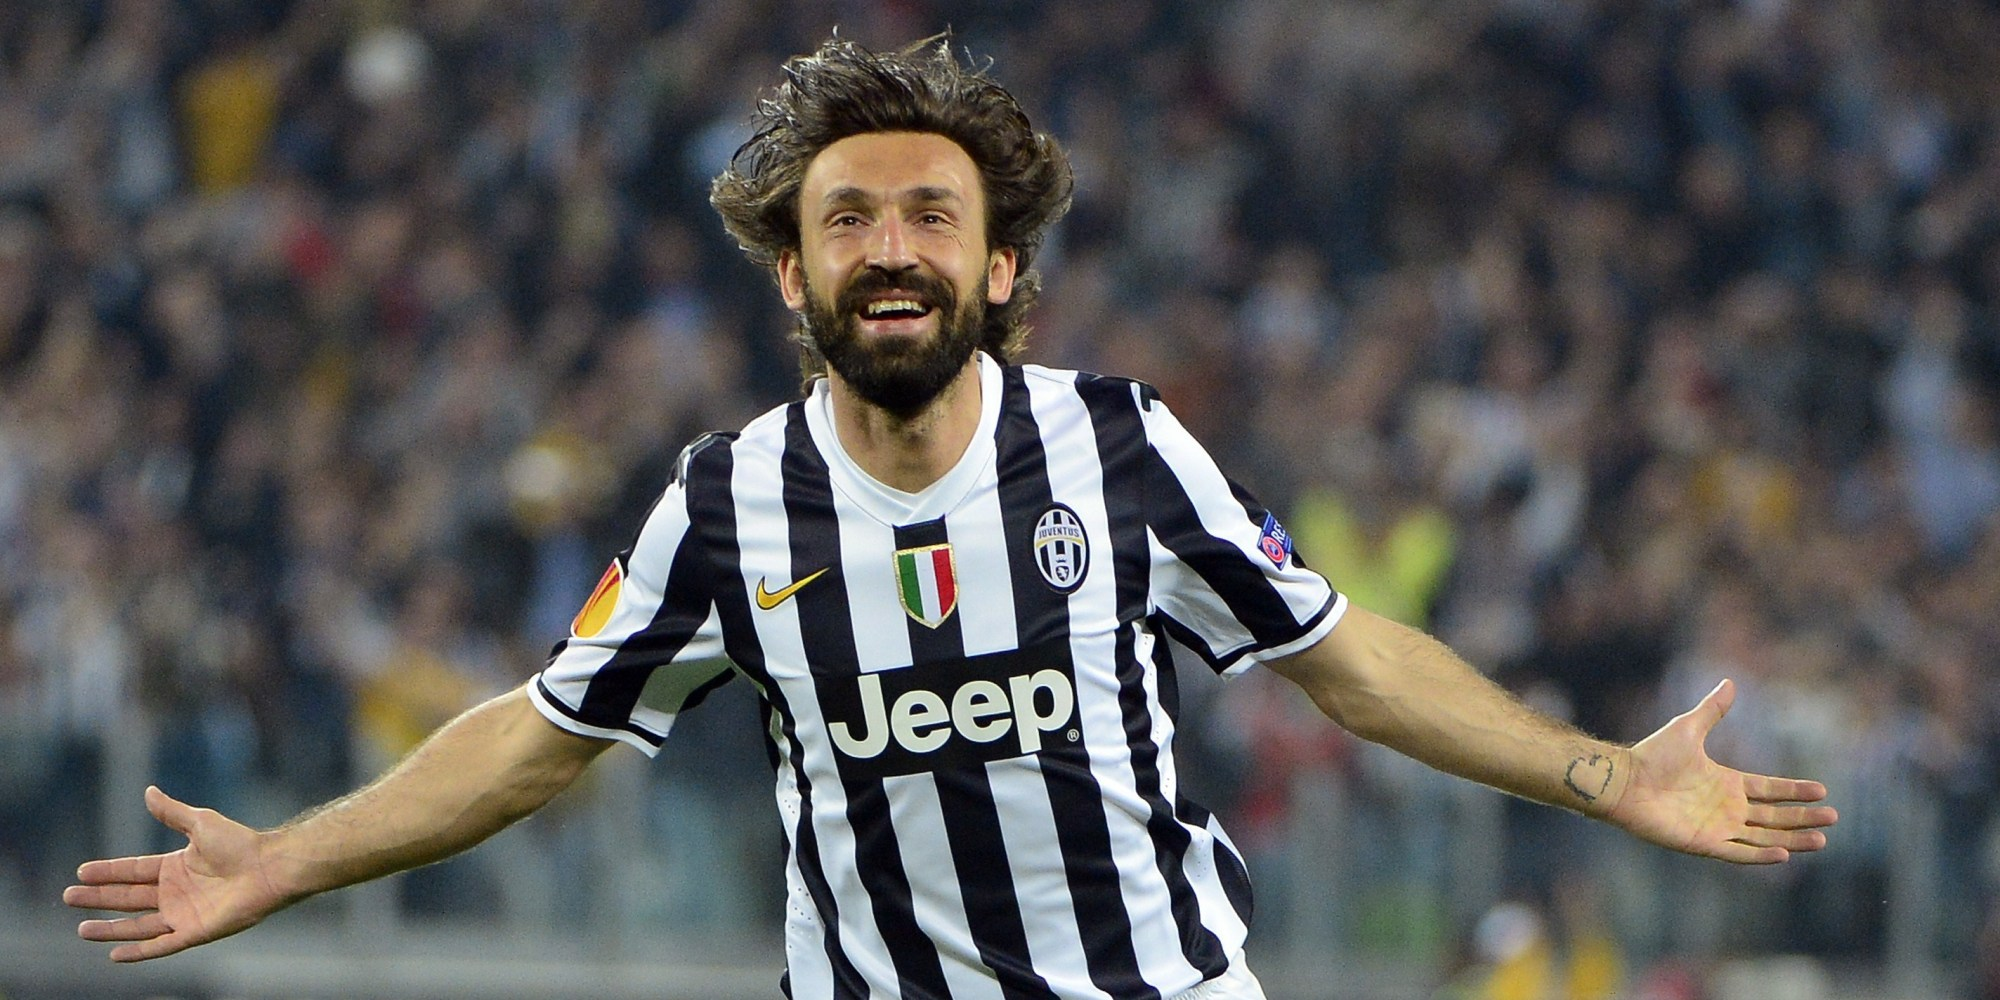 Italy coach Antonio Conte does not expect Juve s Andrea Pirlo to quit